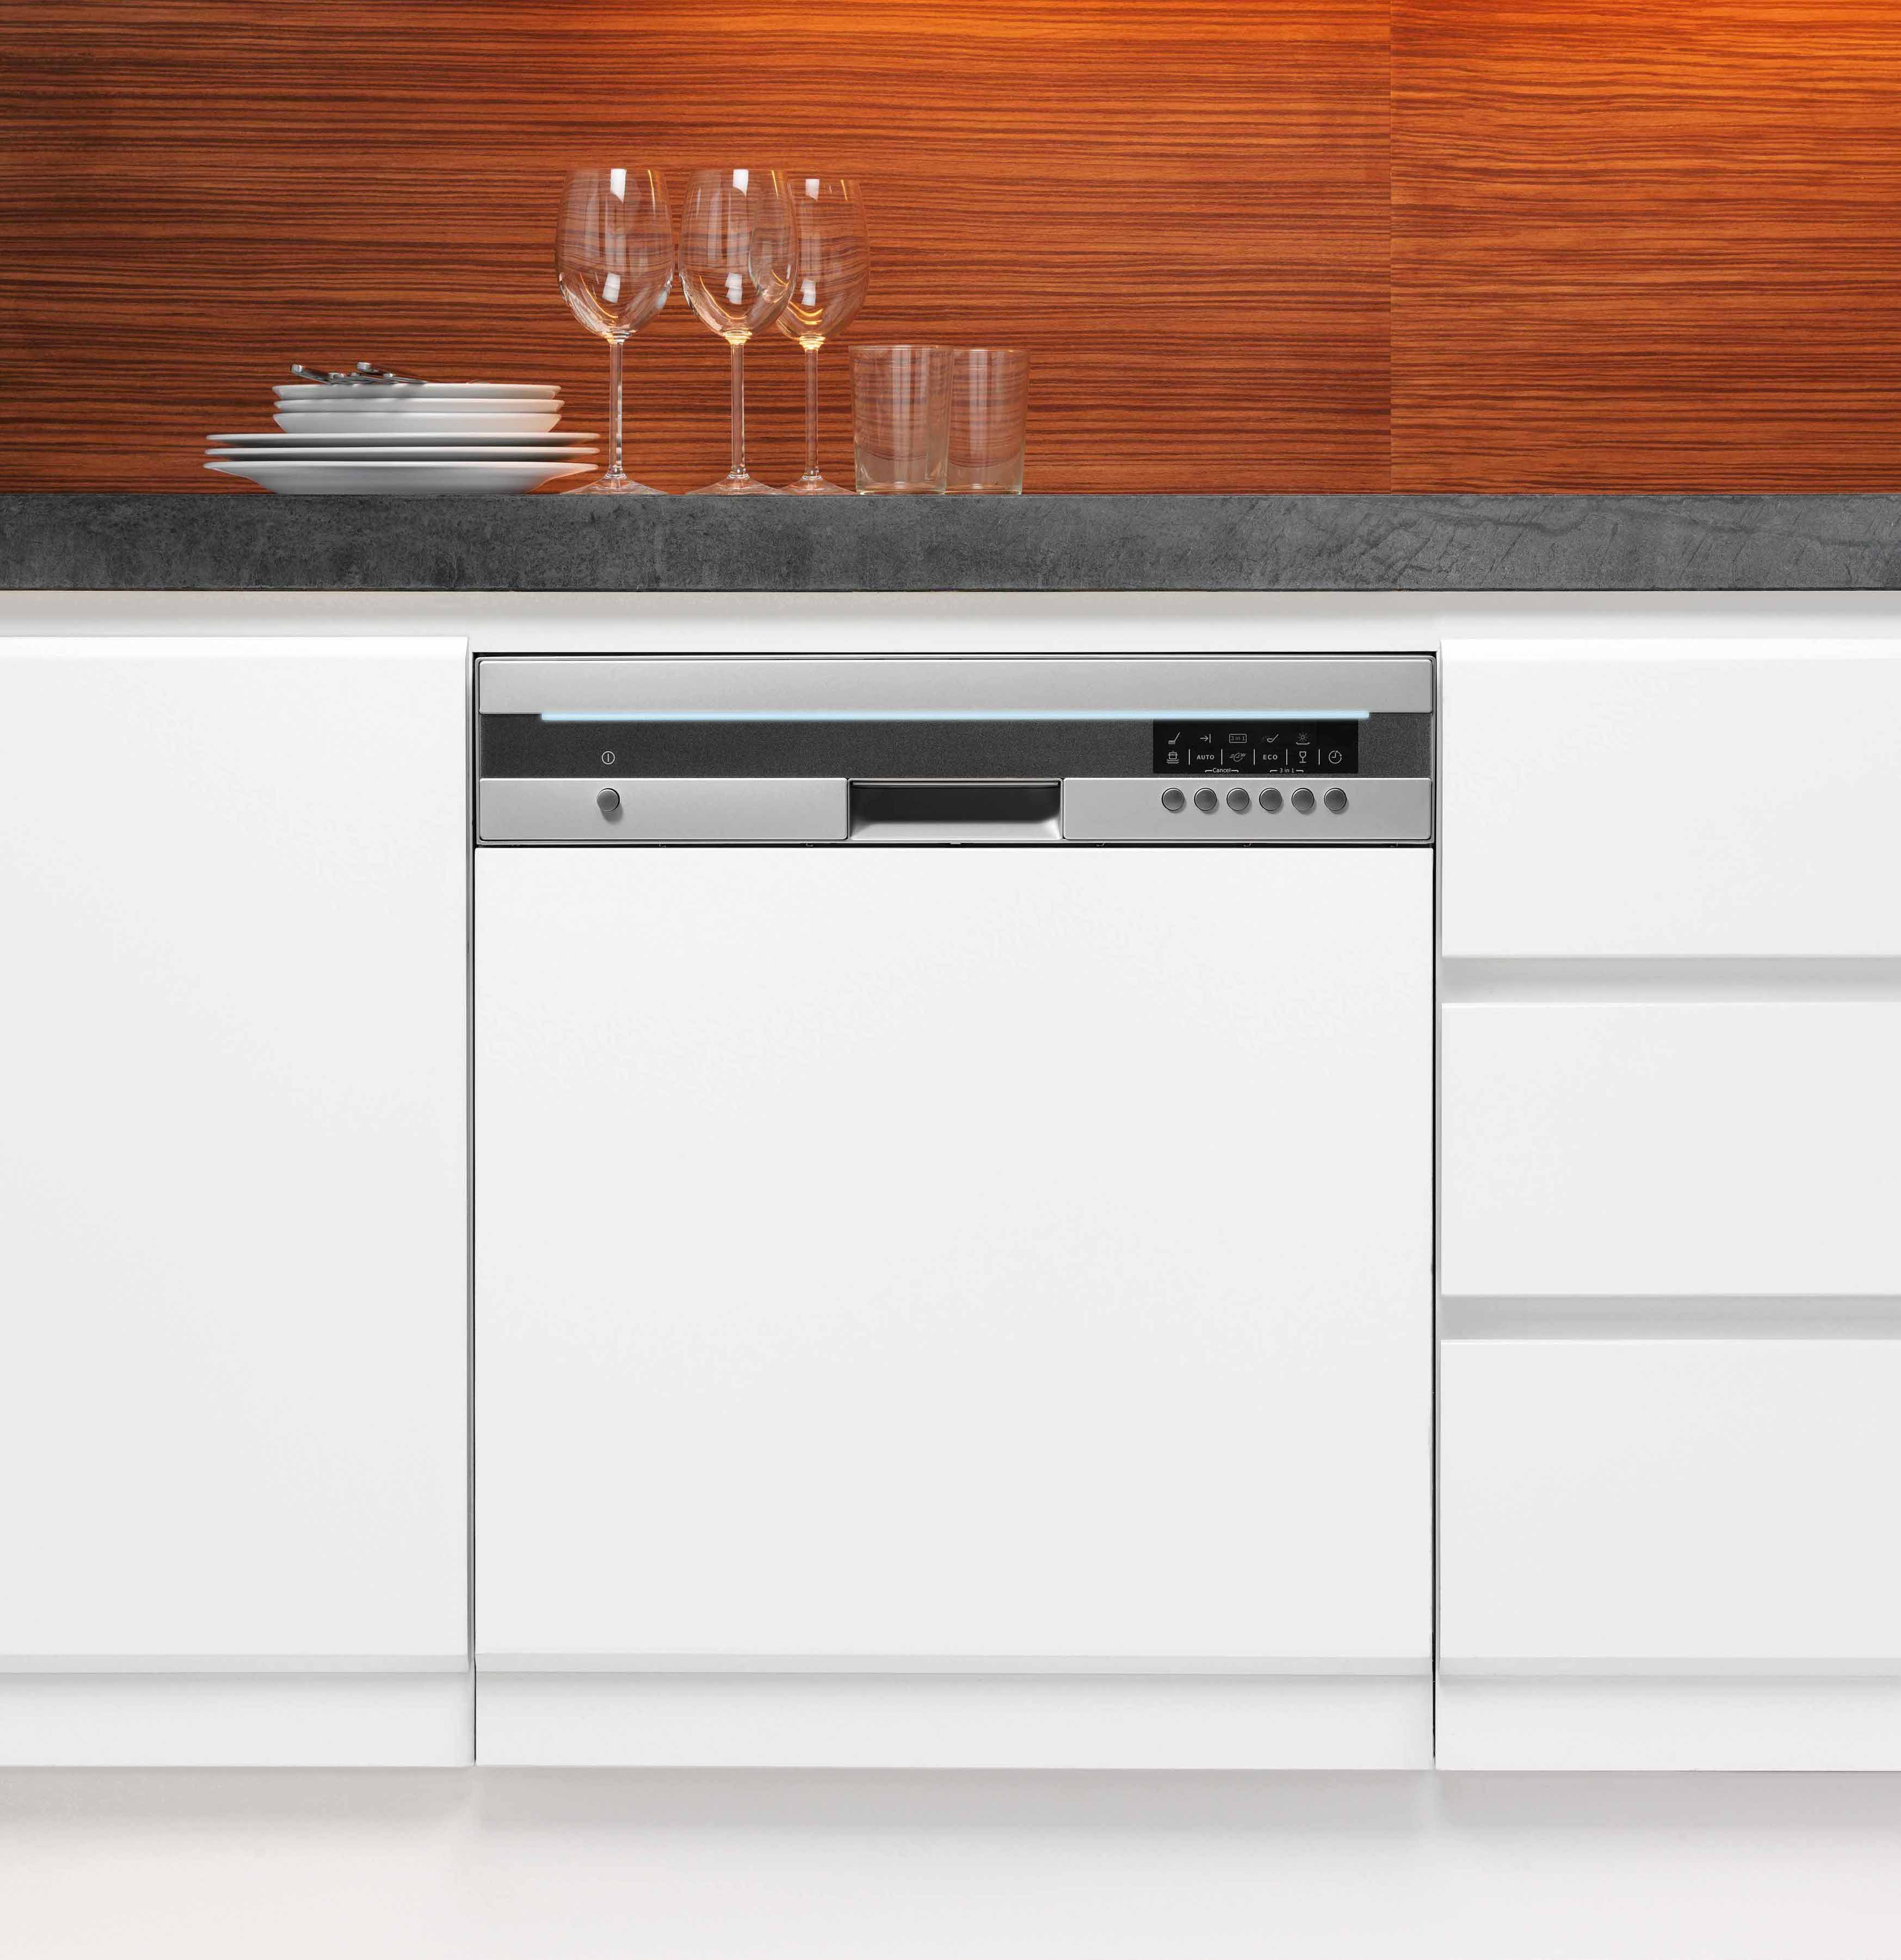 warming oven combi serie have the collection coffee end pin at machine single and new centre dishwasher bosch drawer